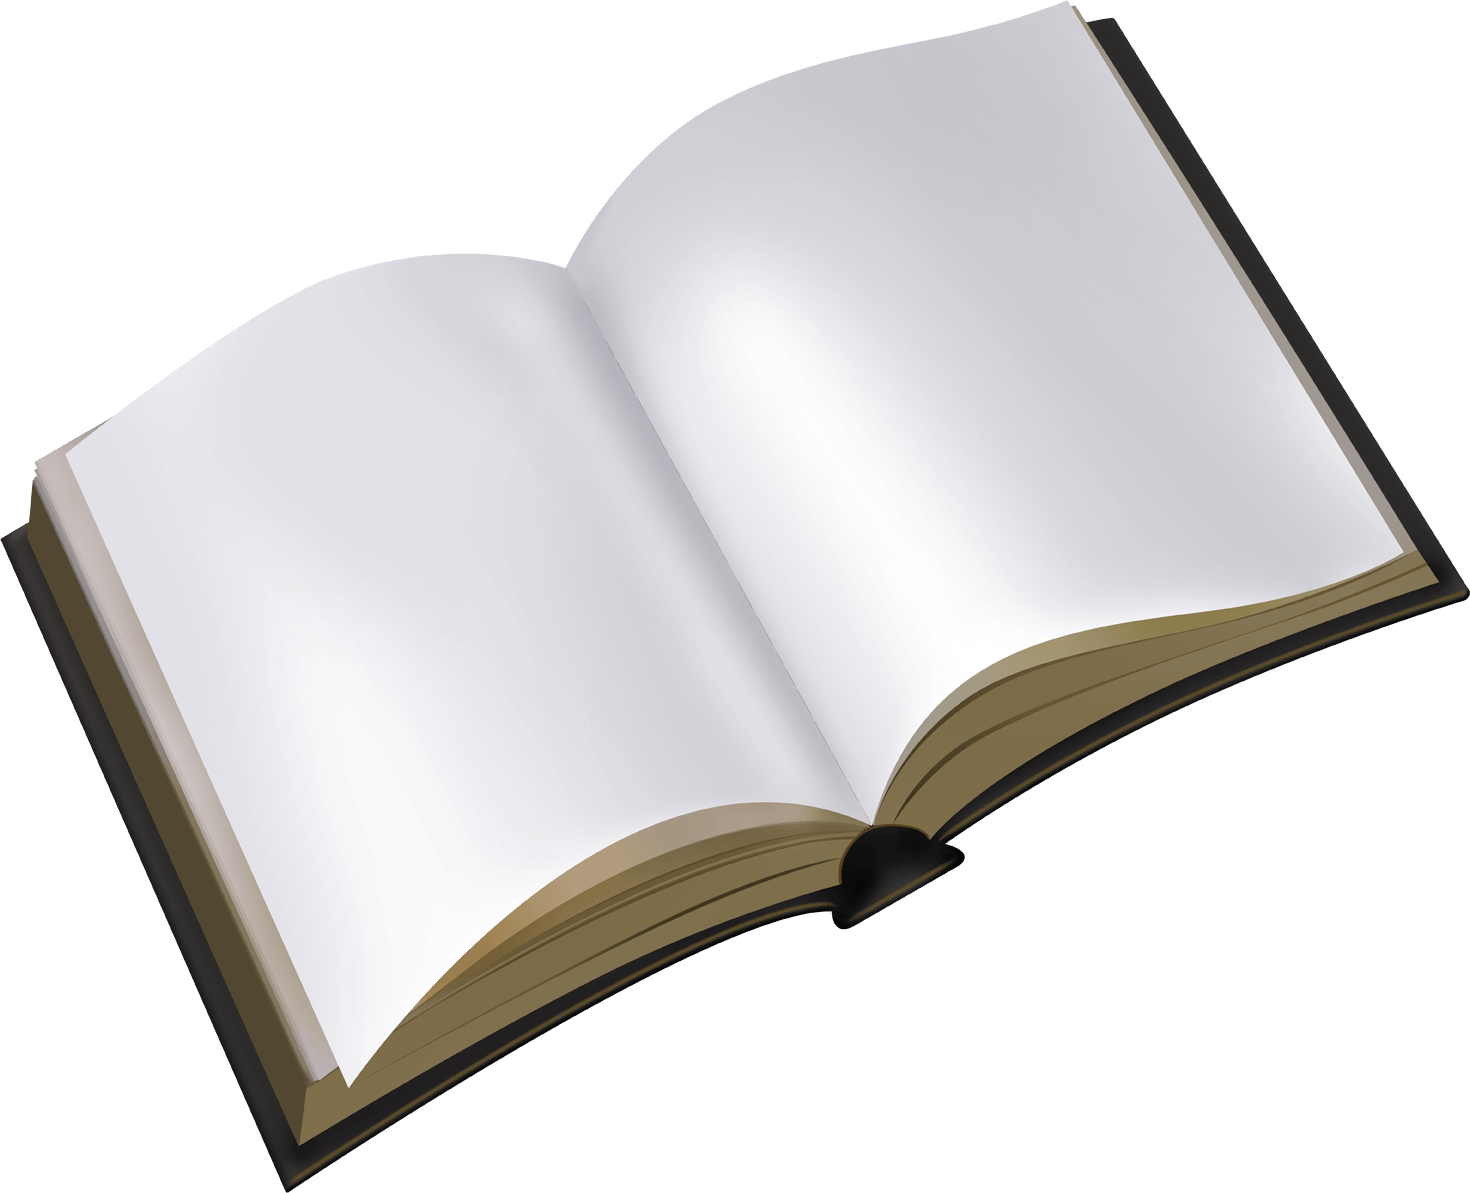 Old open book clipart image royalty free Open White Book transparent PNG - StickPNG image royalty free